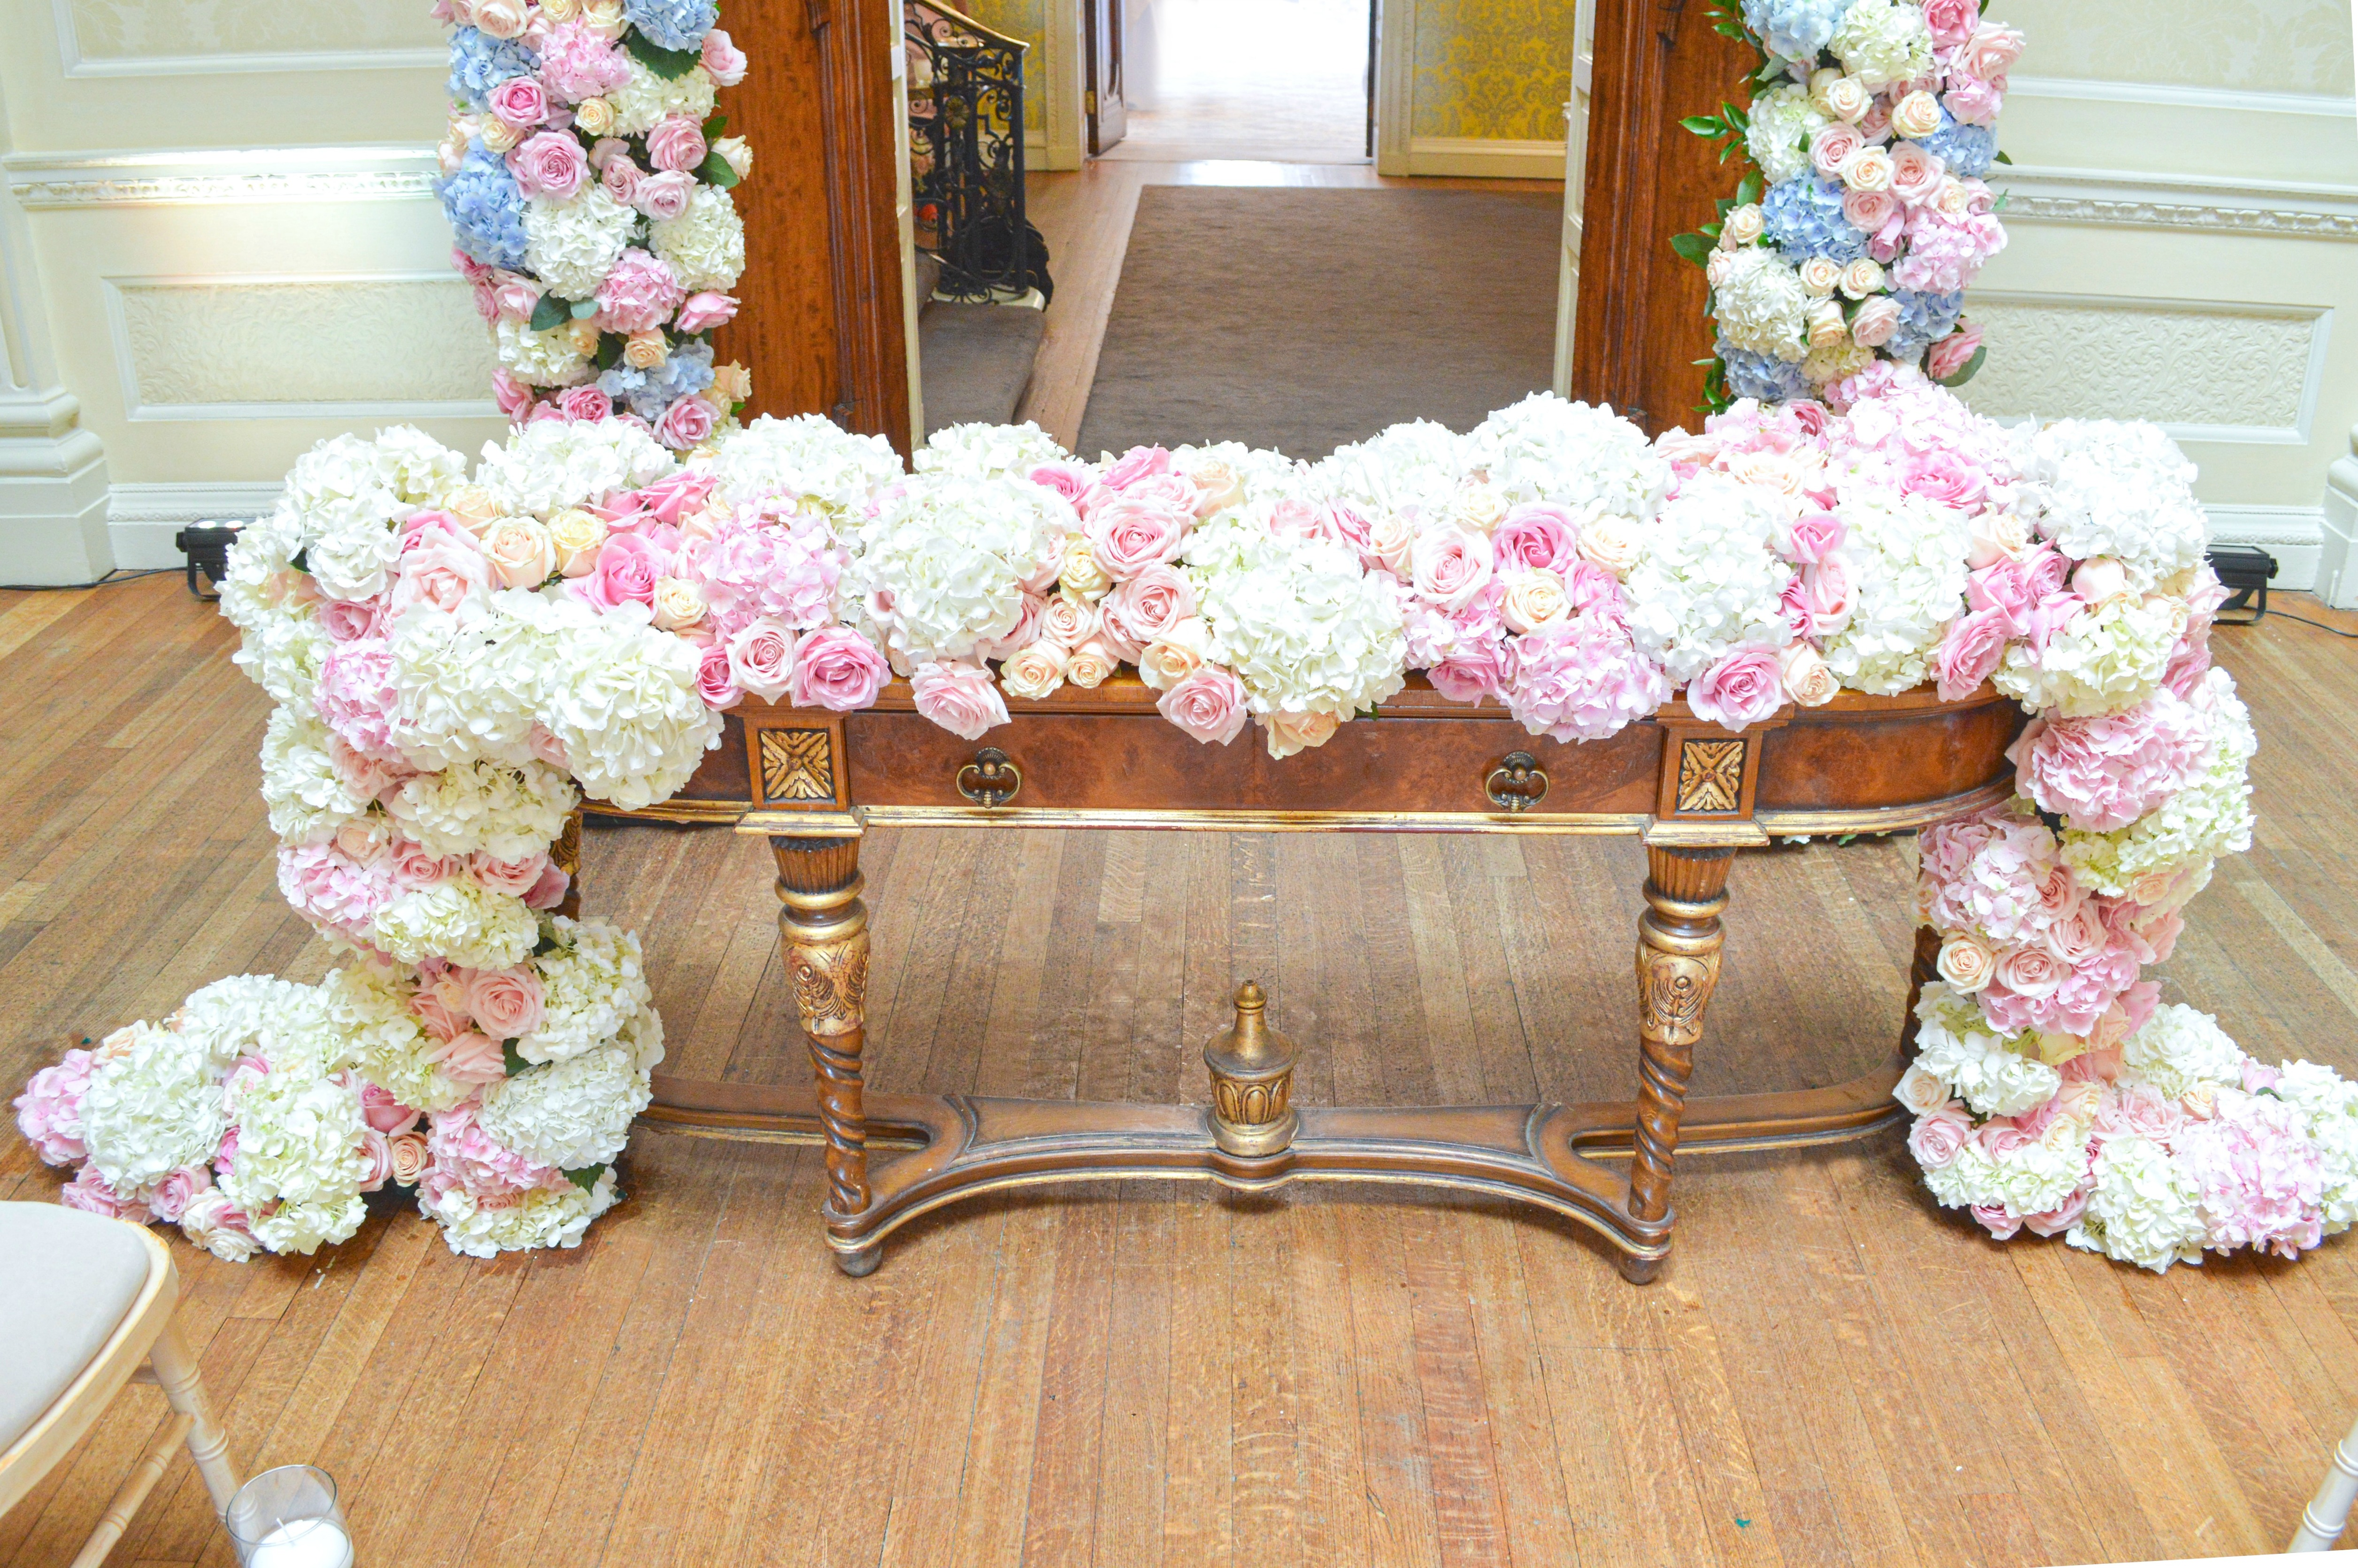 Dusty blue and pink wedding flowers registrar table head toptable floral garland wedding ceremony Cherie Kelly cakes London Hedsor House